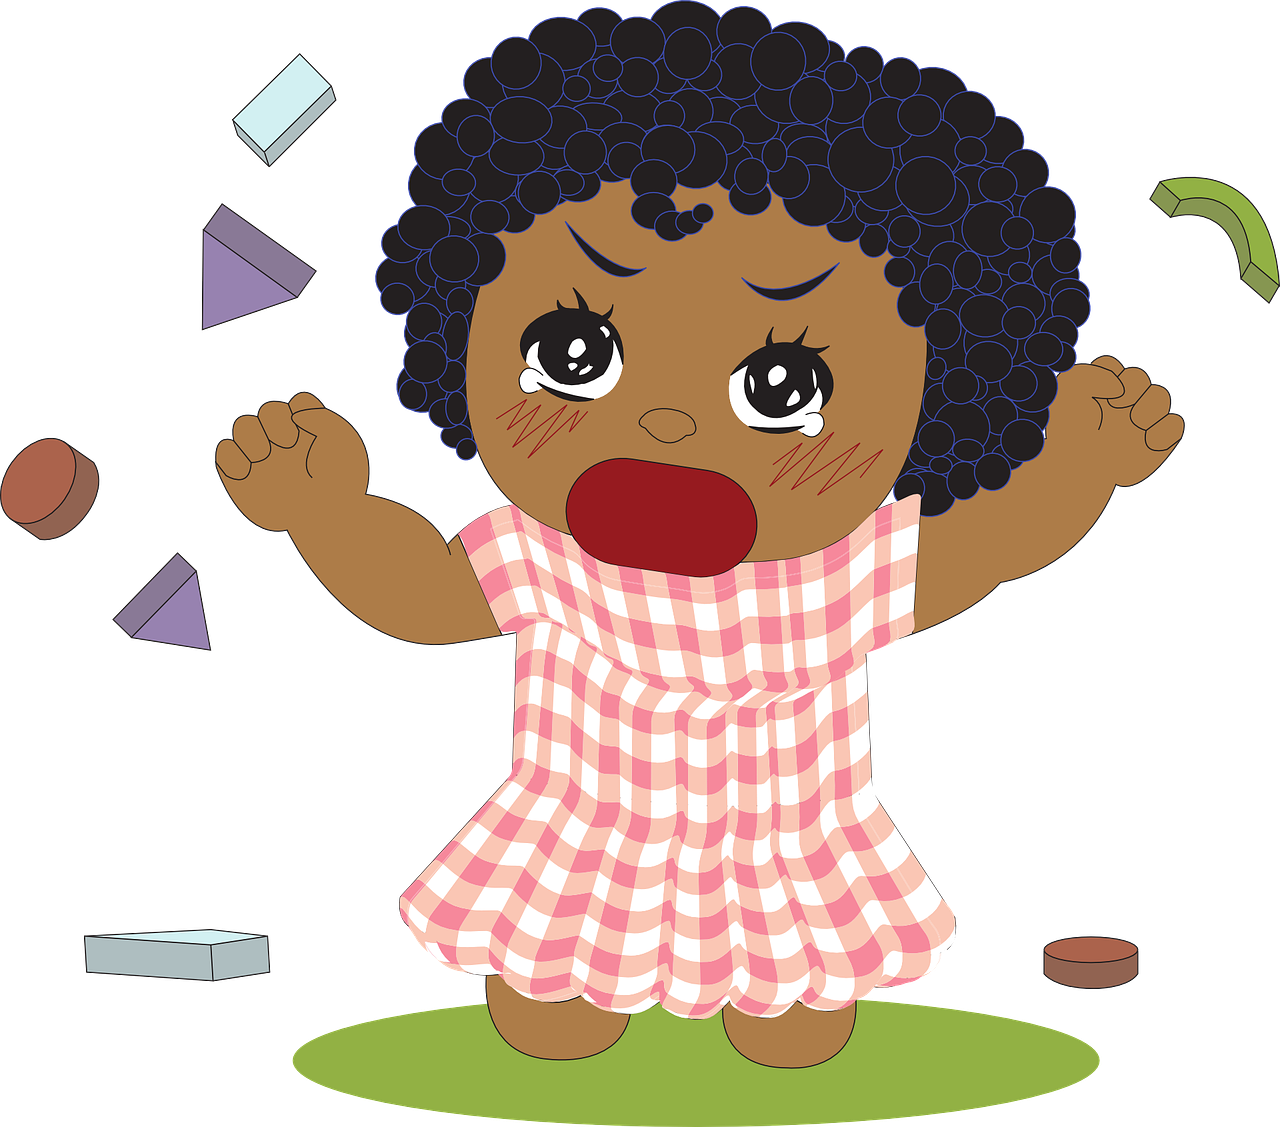 Authentic parenting for . Toddler clipart surprised